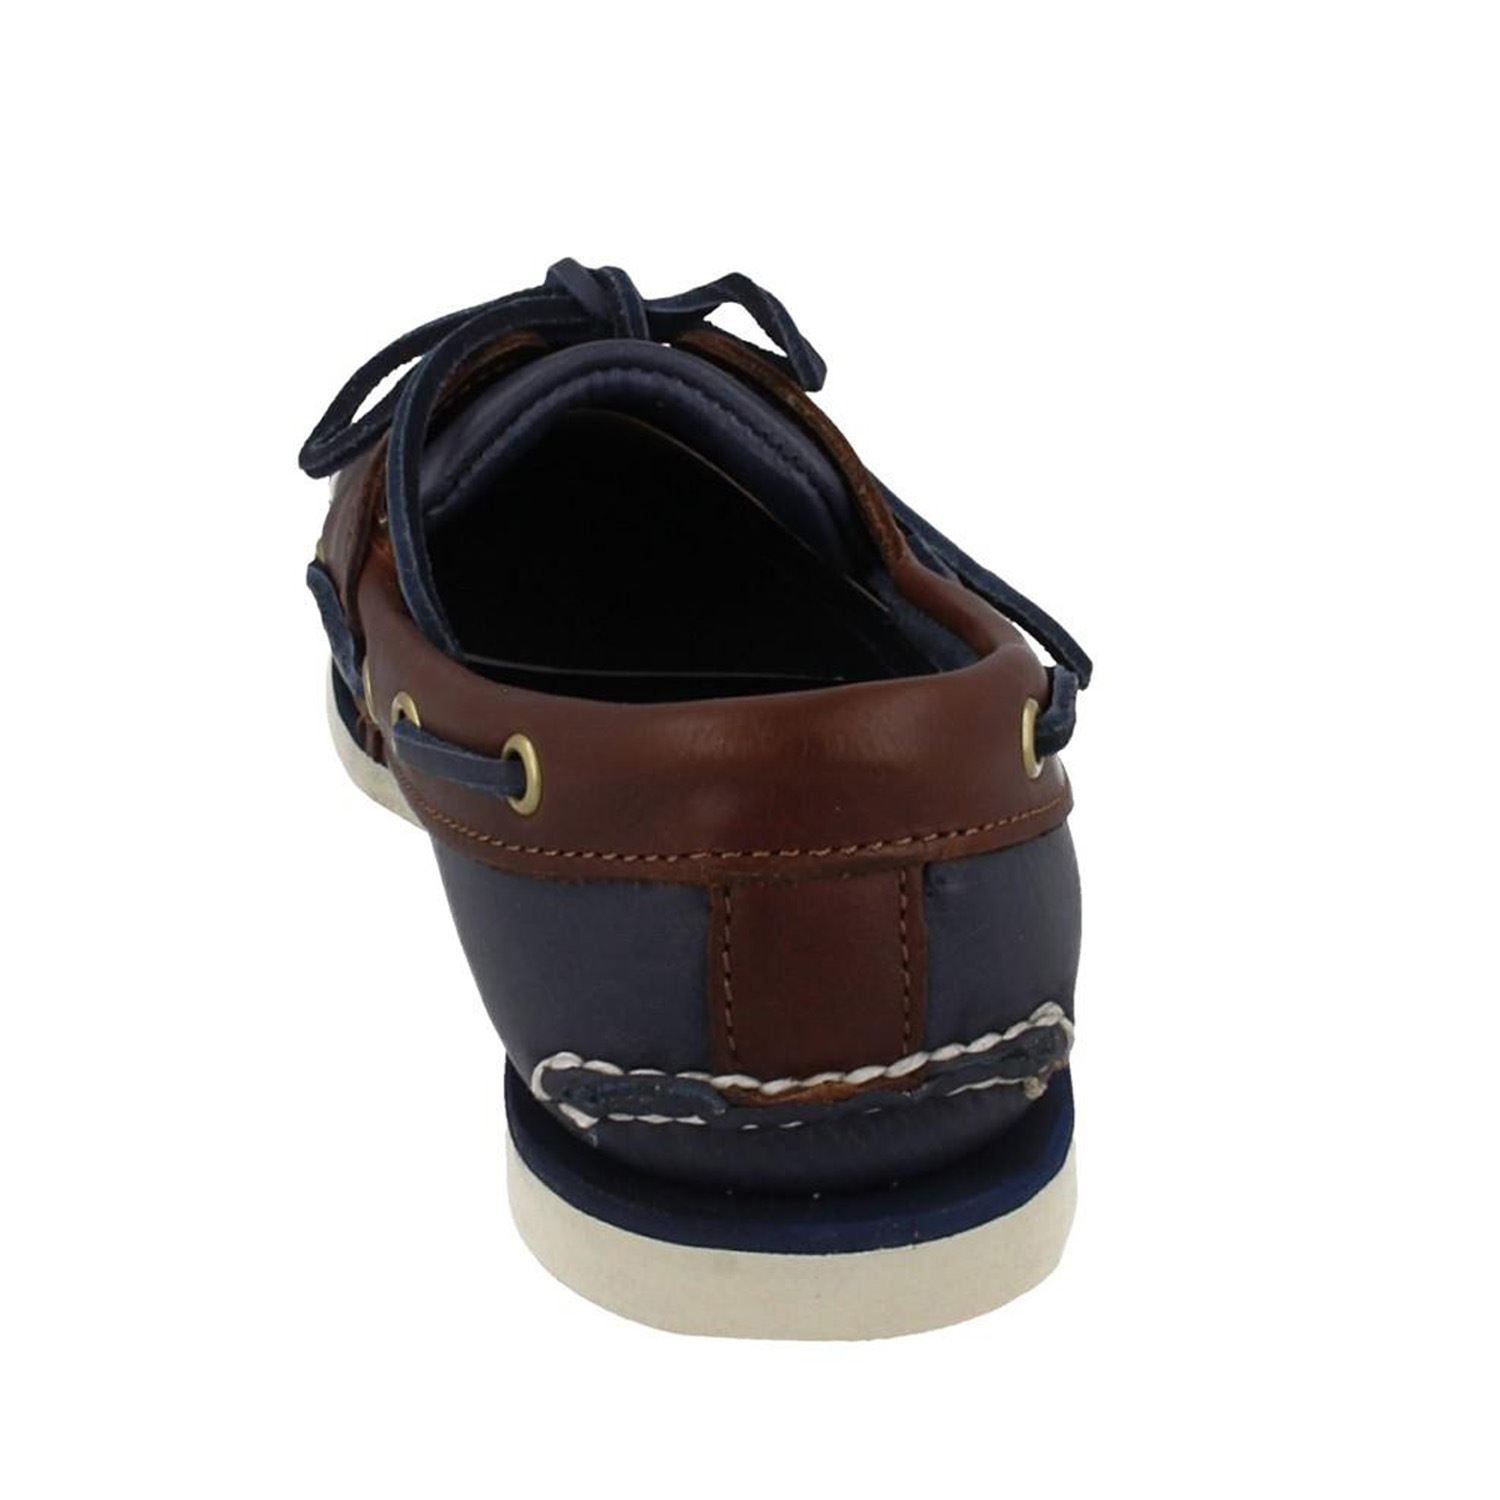 Shop Timberland footwear for Men, Women and Kids. Shop new Timberland, Timberland on sale. Free Shipping and Free Returns*.